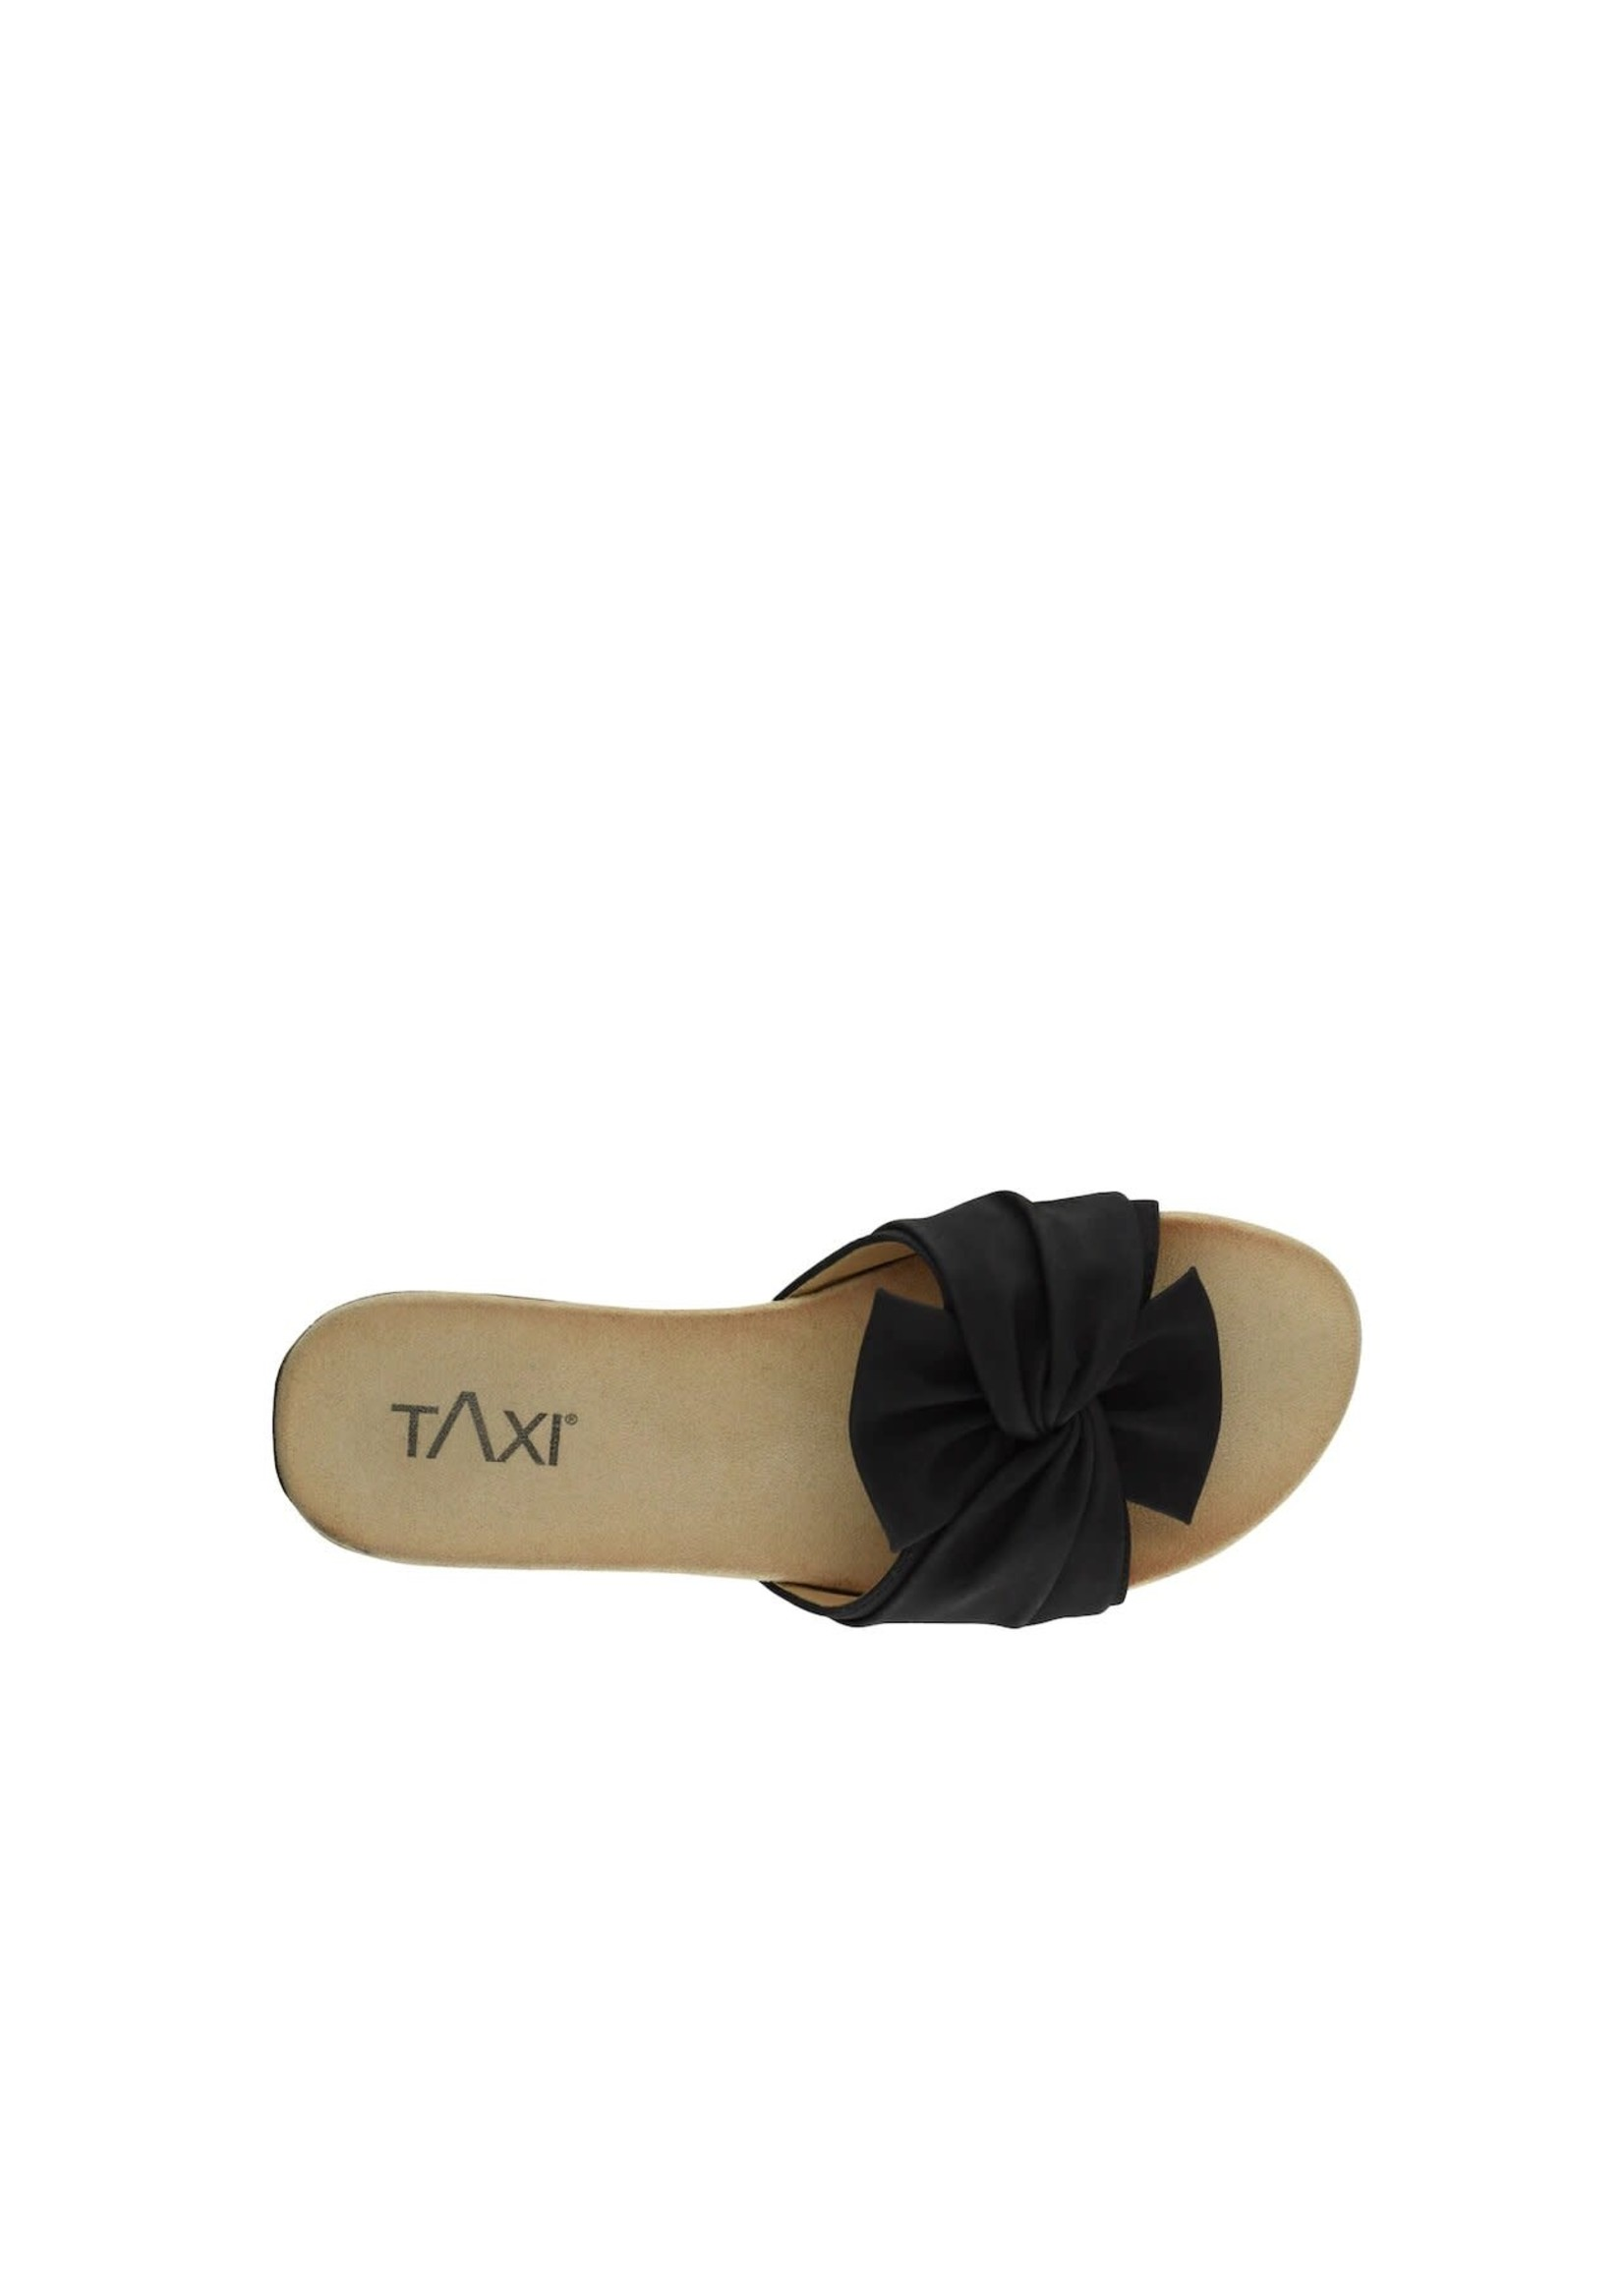 Taxi Footwear Amalfi Slip On *Colors*